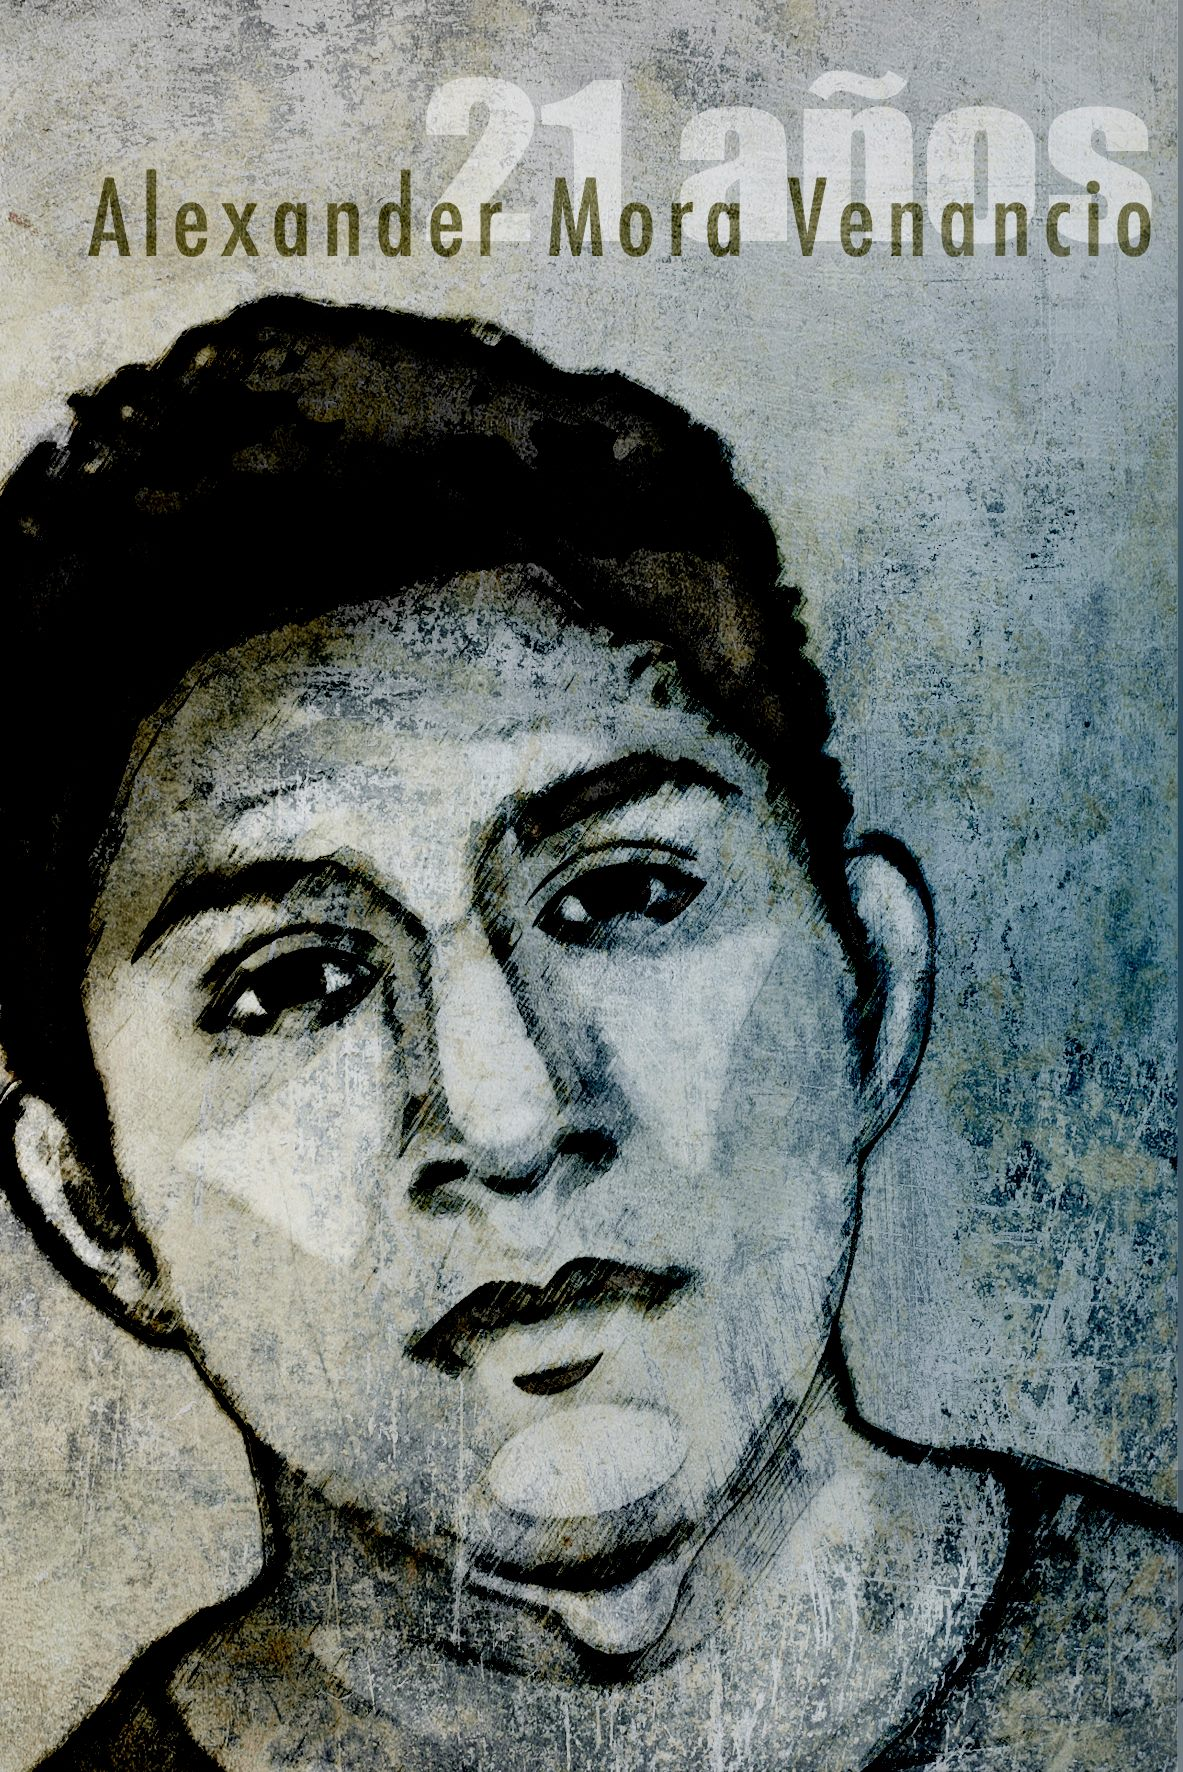 Portrait of Alexander Mora Venancio by Kathia Recio from the movement Ilustrators with Ayotzinapa #IlustradoresConAyotzinapa.